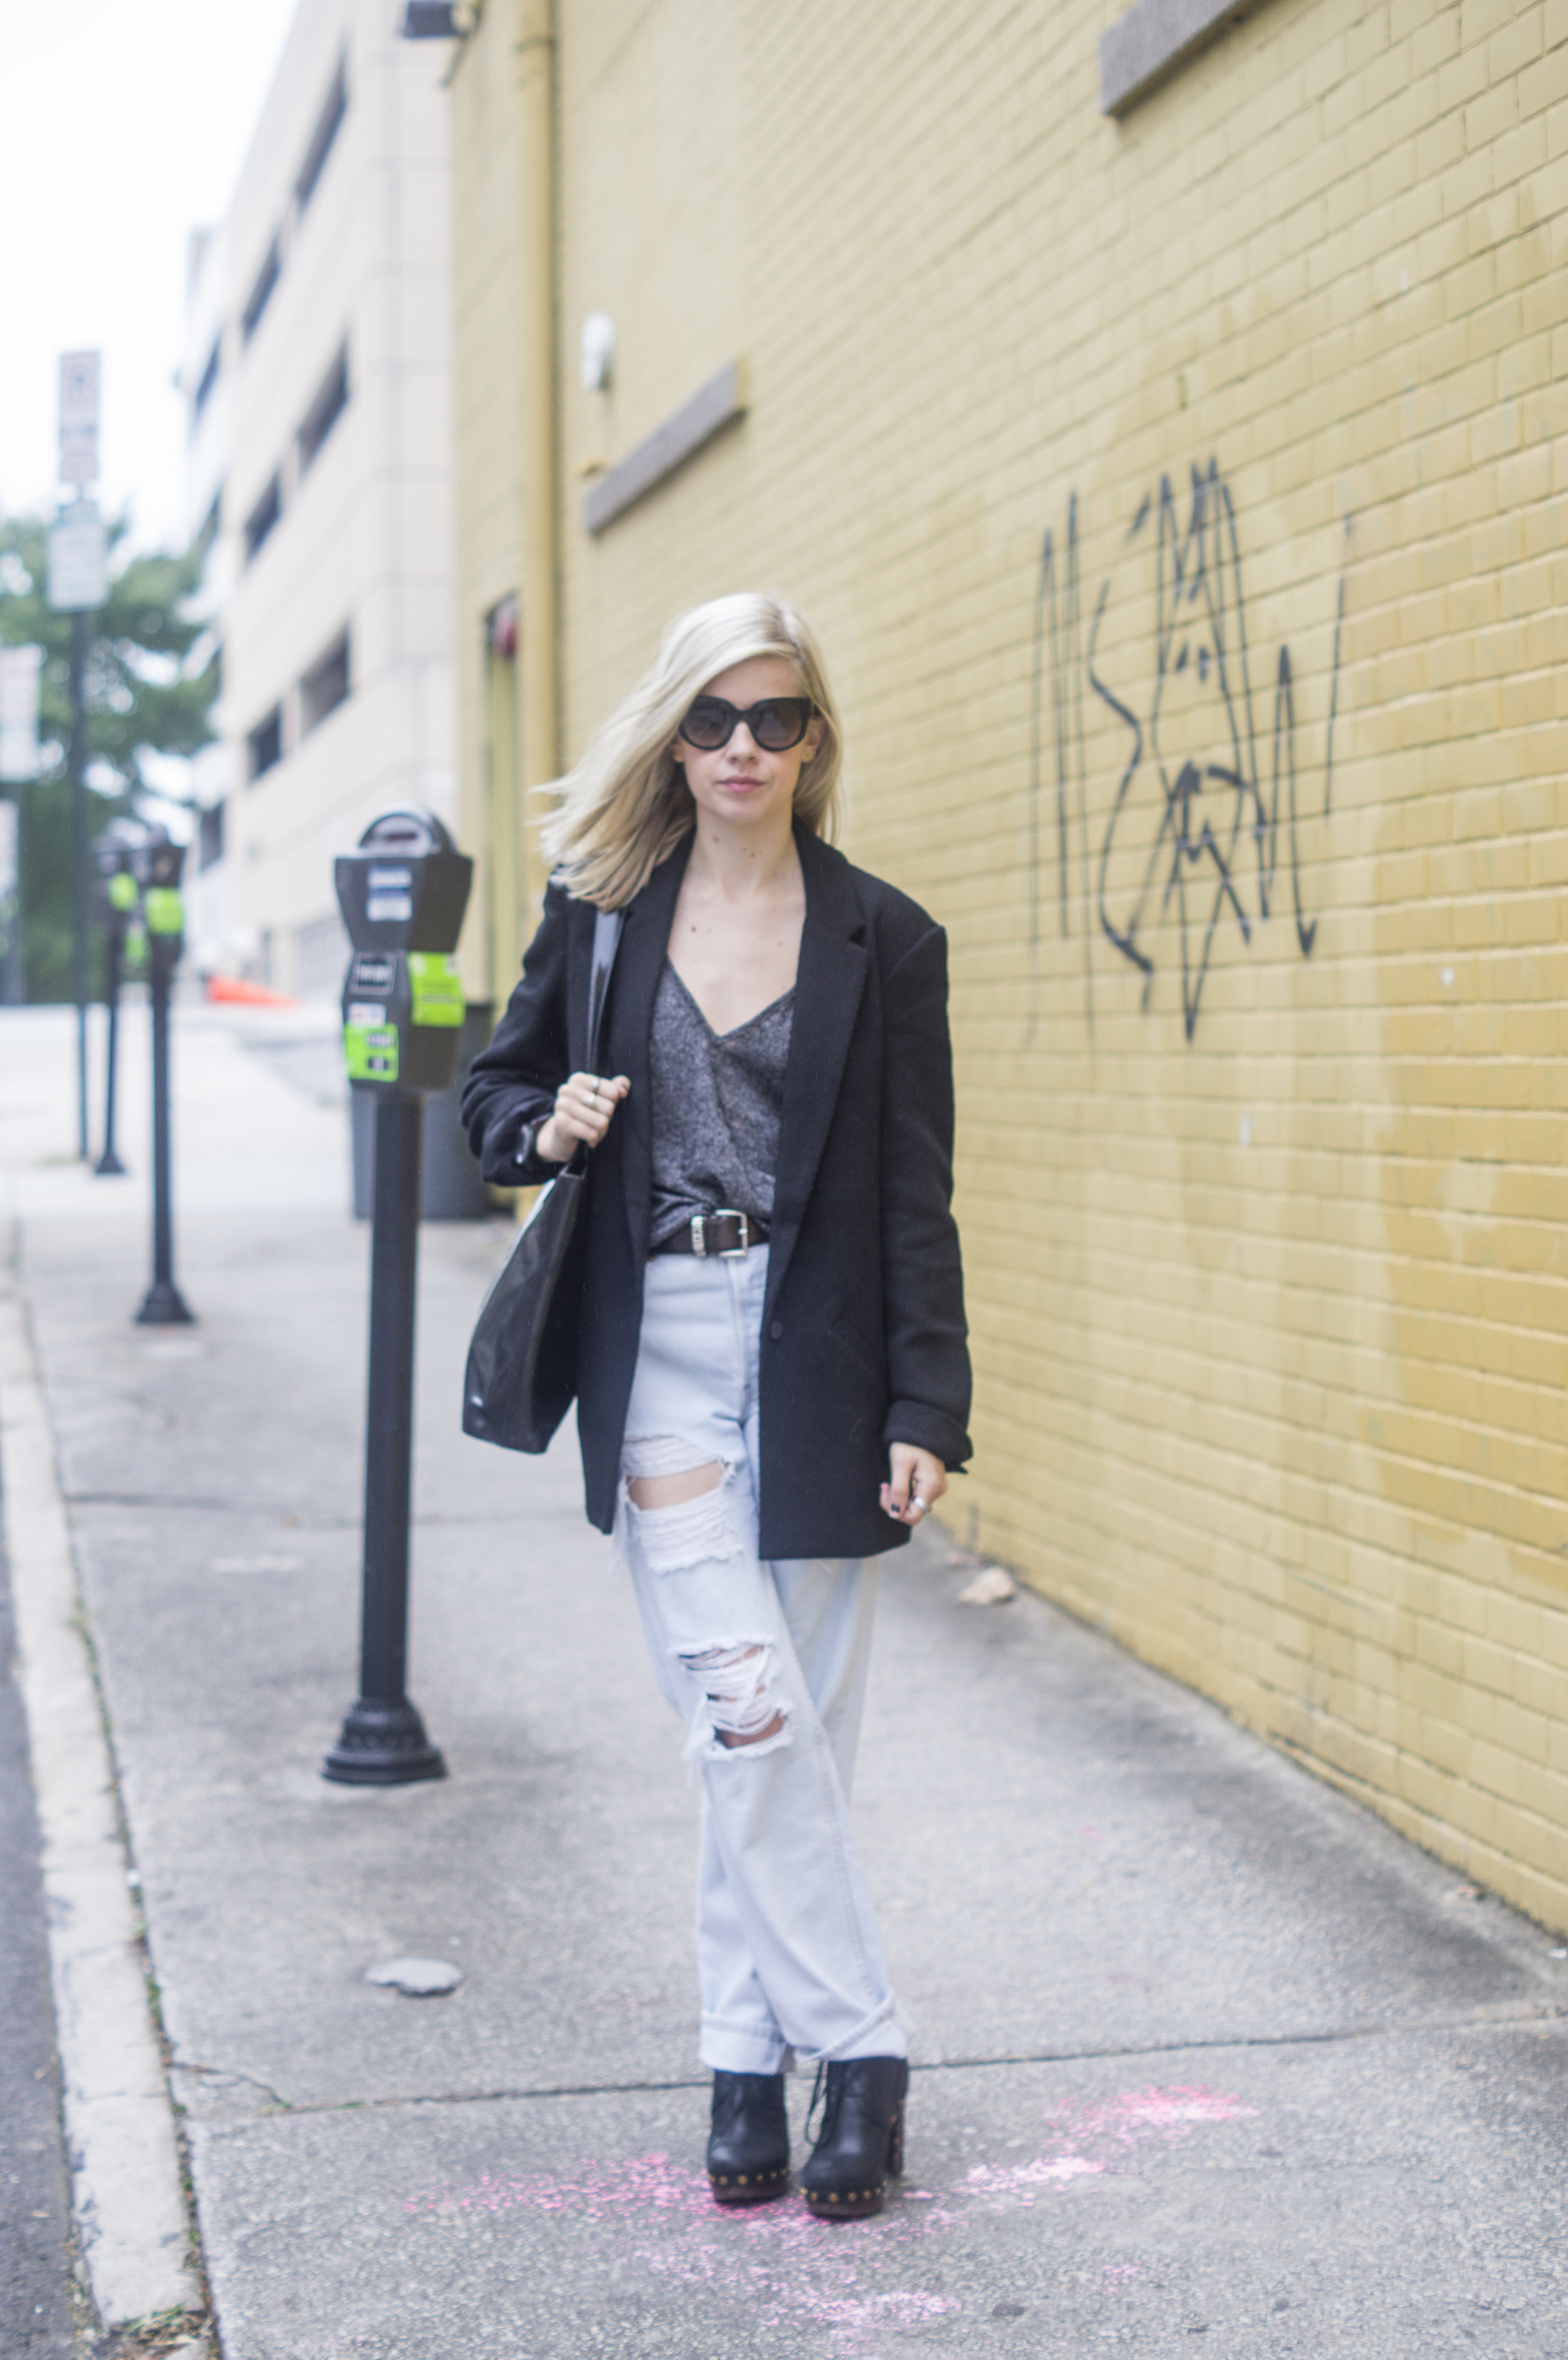 TGIF, Liz Best, Liz-Best, Delaney O'Connor Photography, Urban Outfitters Tank, Urban Outfitters Blazer, Urban Renewal Jeans,  Vintage Moschino Belt, Vintage Moschino Bag, Marc by Marc Jacobs Shoes